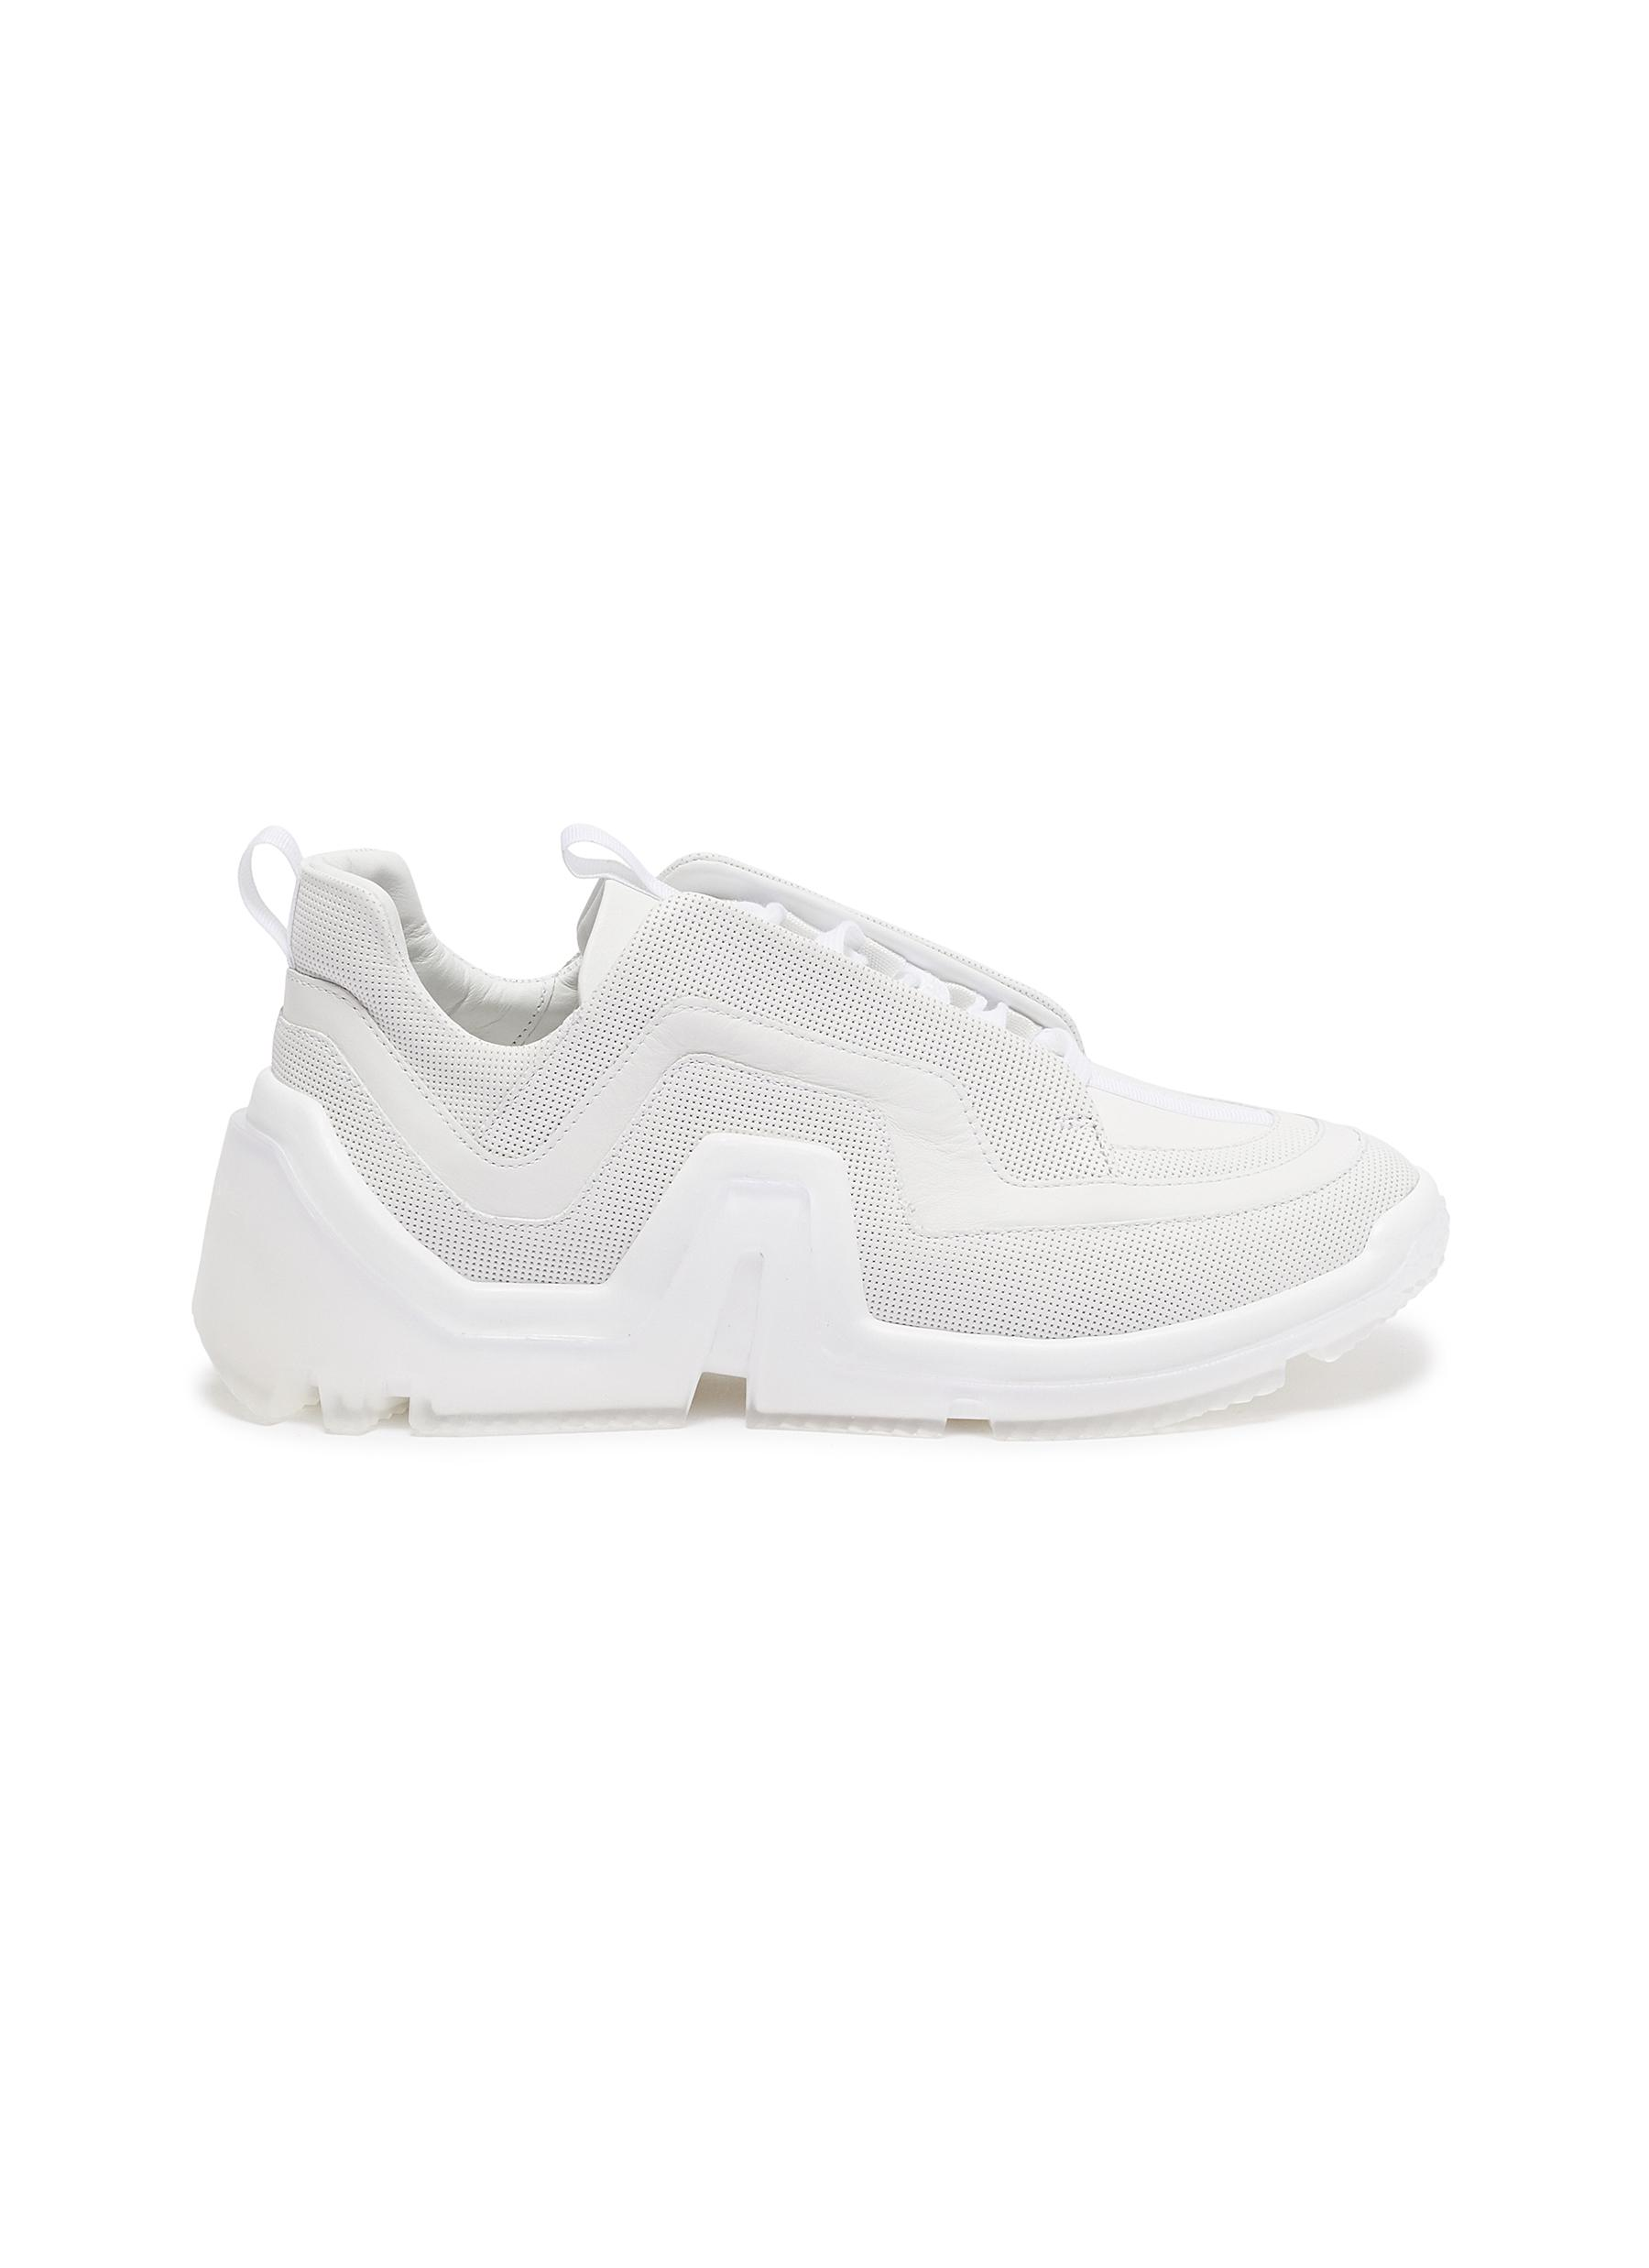 Vibe' perforated leather sneakers - PIERRE HARDY - Modalova